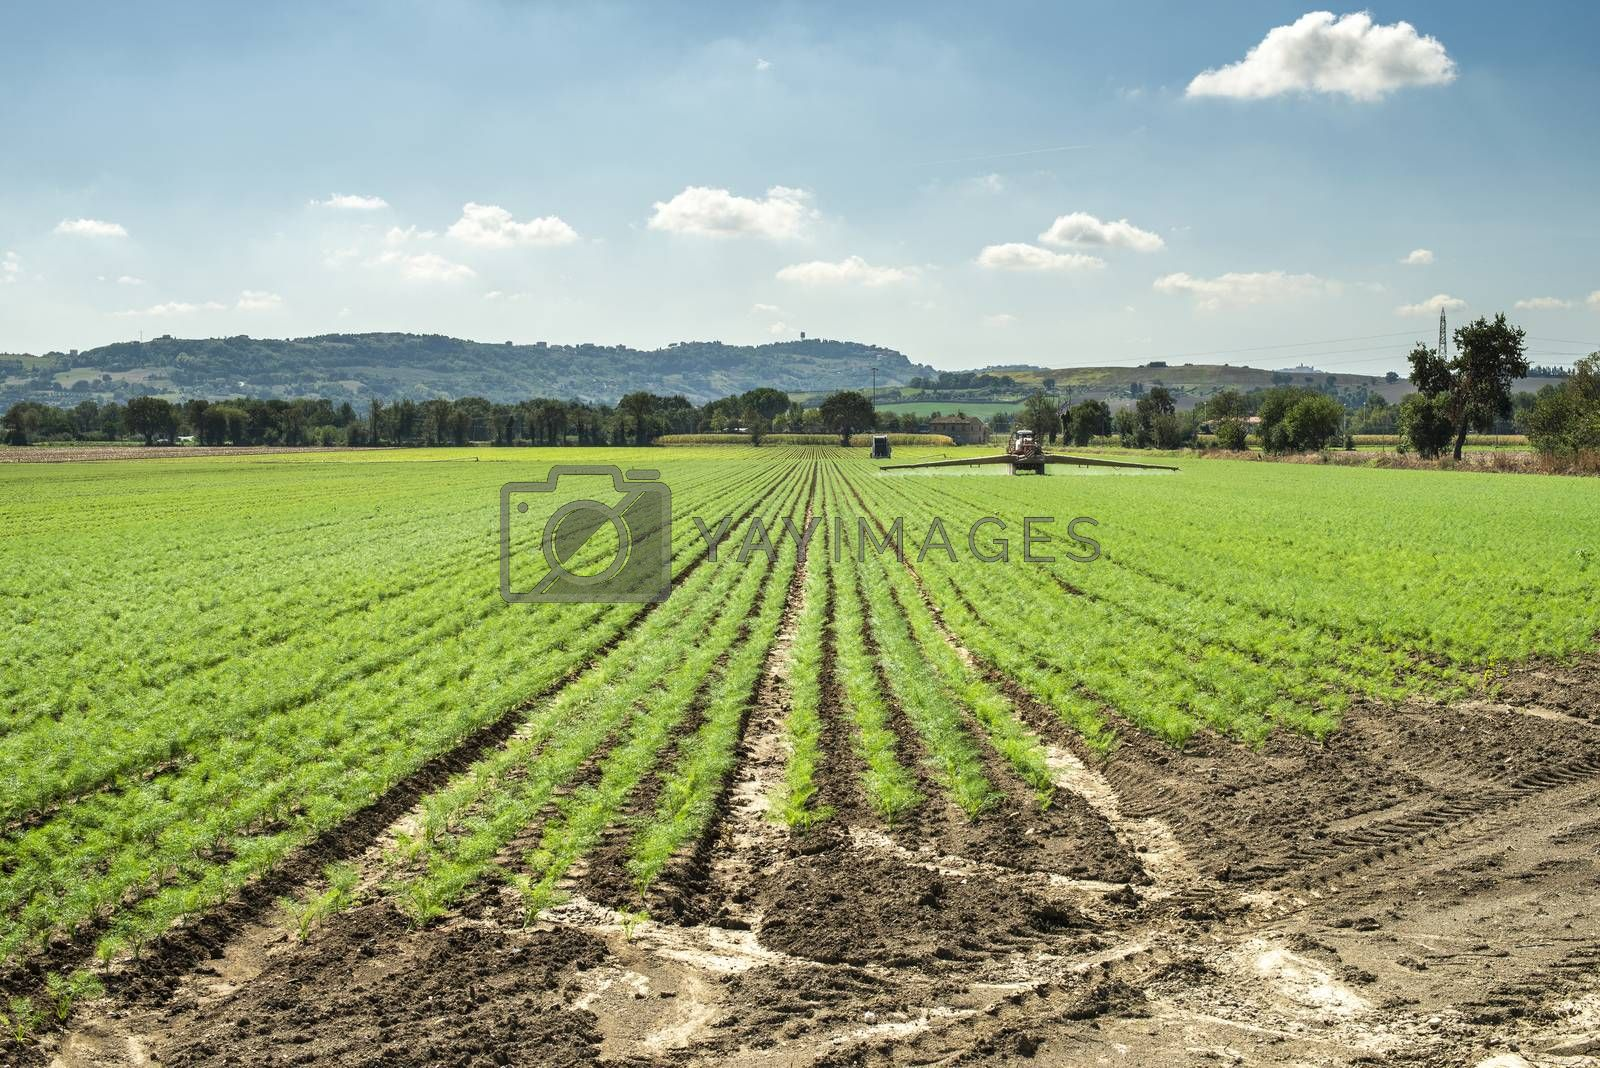 Fennel young plants in rows. Agriculture land with small fennel plants. Big farm.